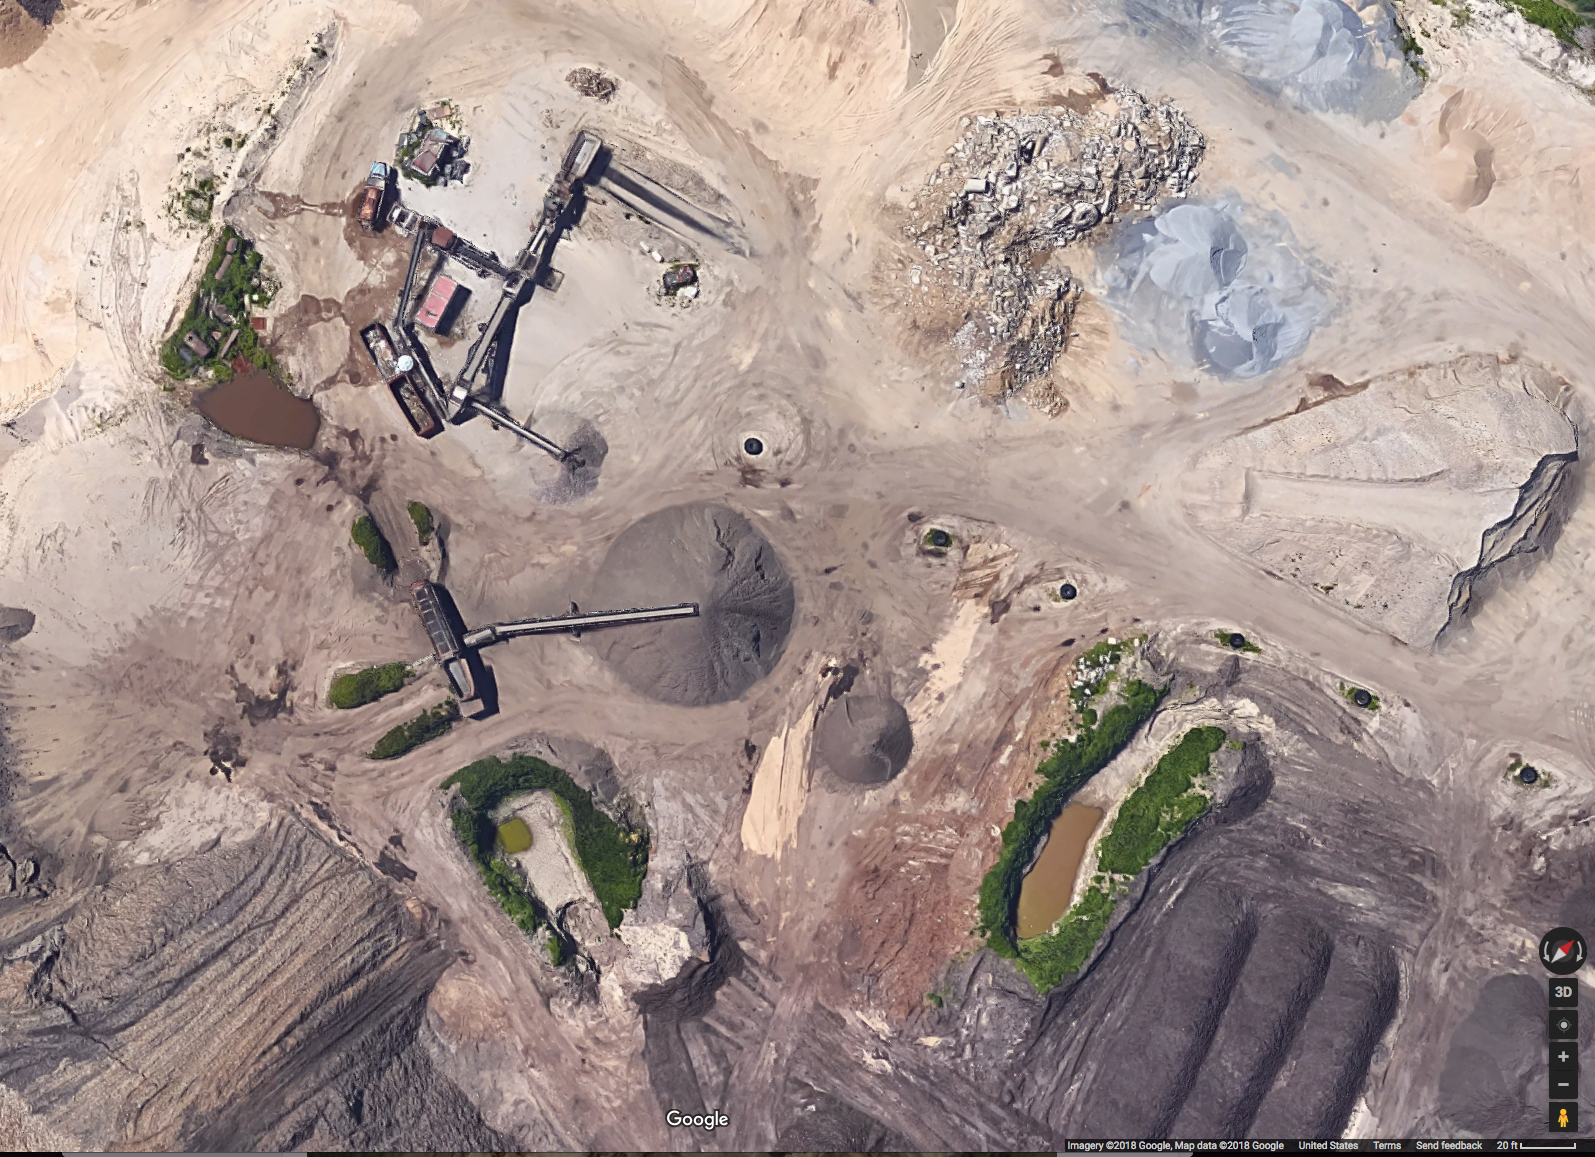 This photo of the Sand Land Mine showing 3 pools of runoff was taken from Google satellite on March 4, 2018.